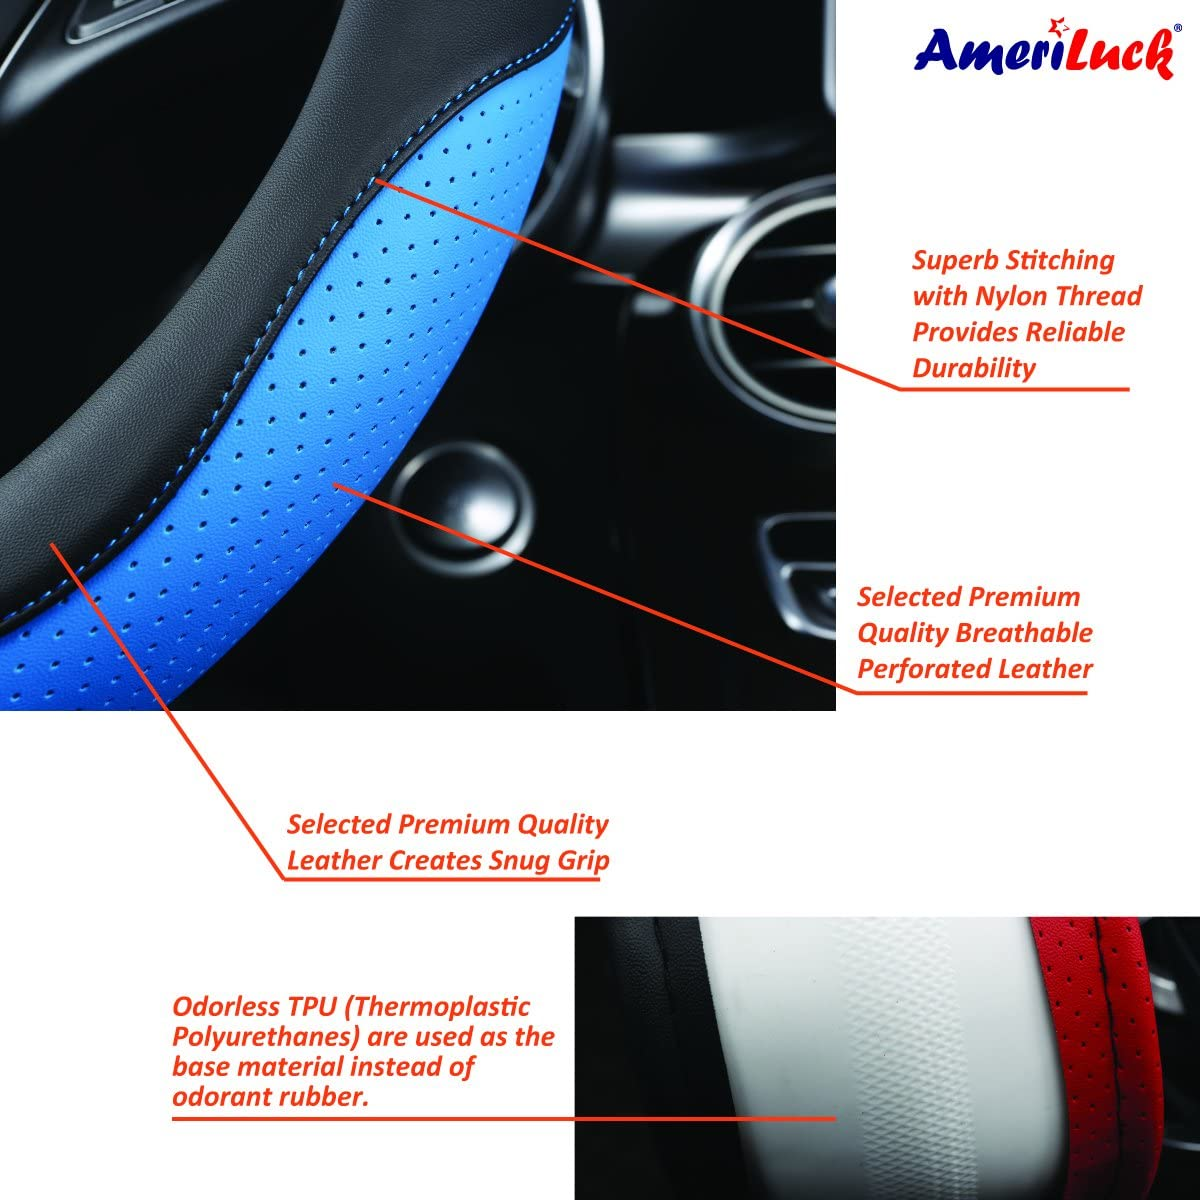 Odorless Soft and Snug Grip Breathable Micro Fiber, Black | Red Stitch Anti-Slip Sporty AmeriLuck Steering Wheel Cover for Car Universal 15 inch